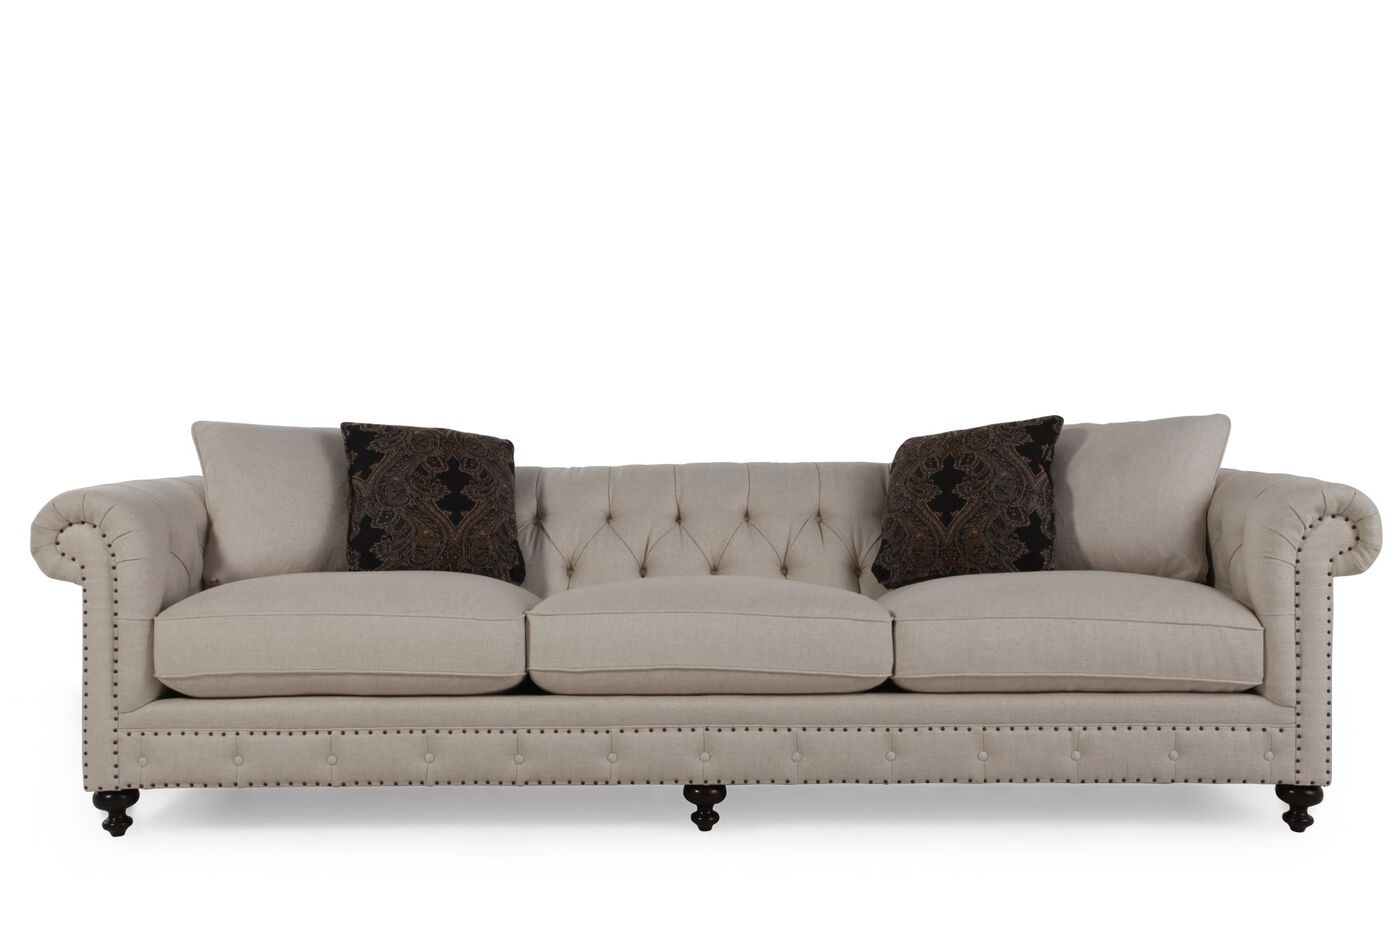 Bernhardt riviera large sofa mathis brothers furniture for Bernhardt living room furniture